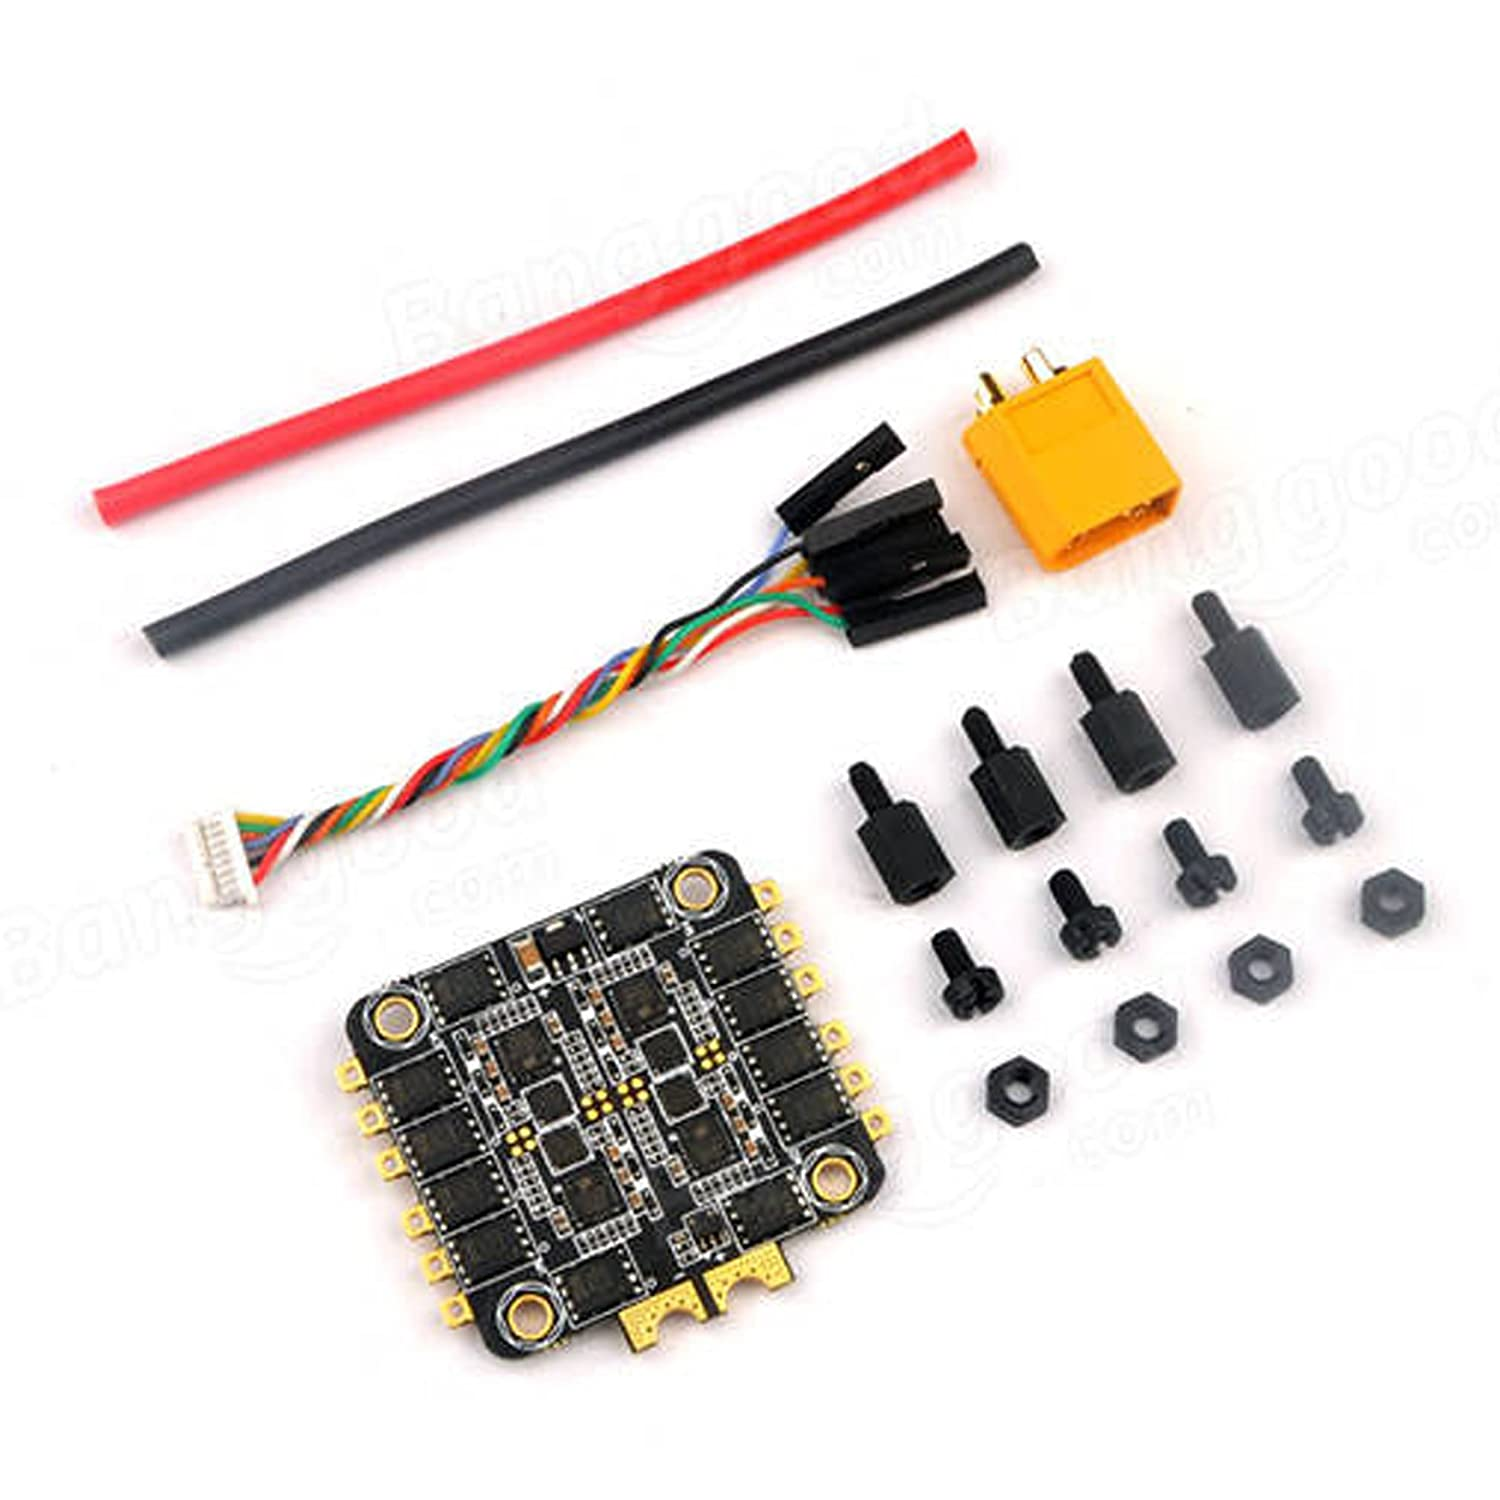 Racerstar 35a 4in1 Esc 3 6s Special Edition With Current Naze32 Wiring Diagram Sensor Dshot600 Toys Games